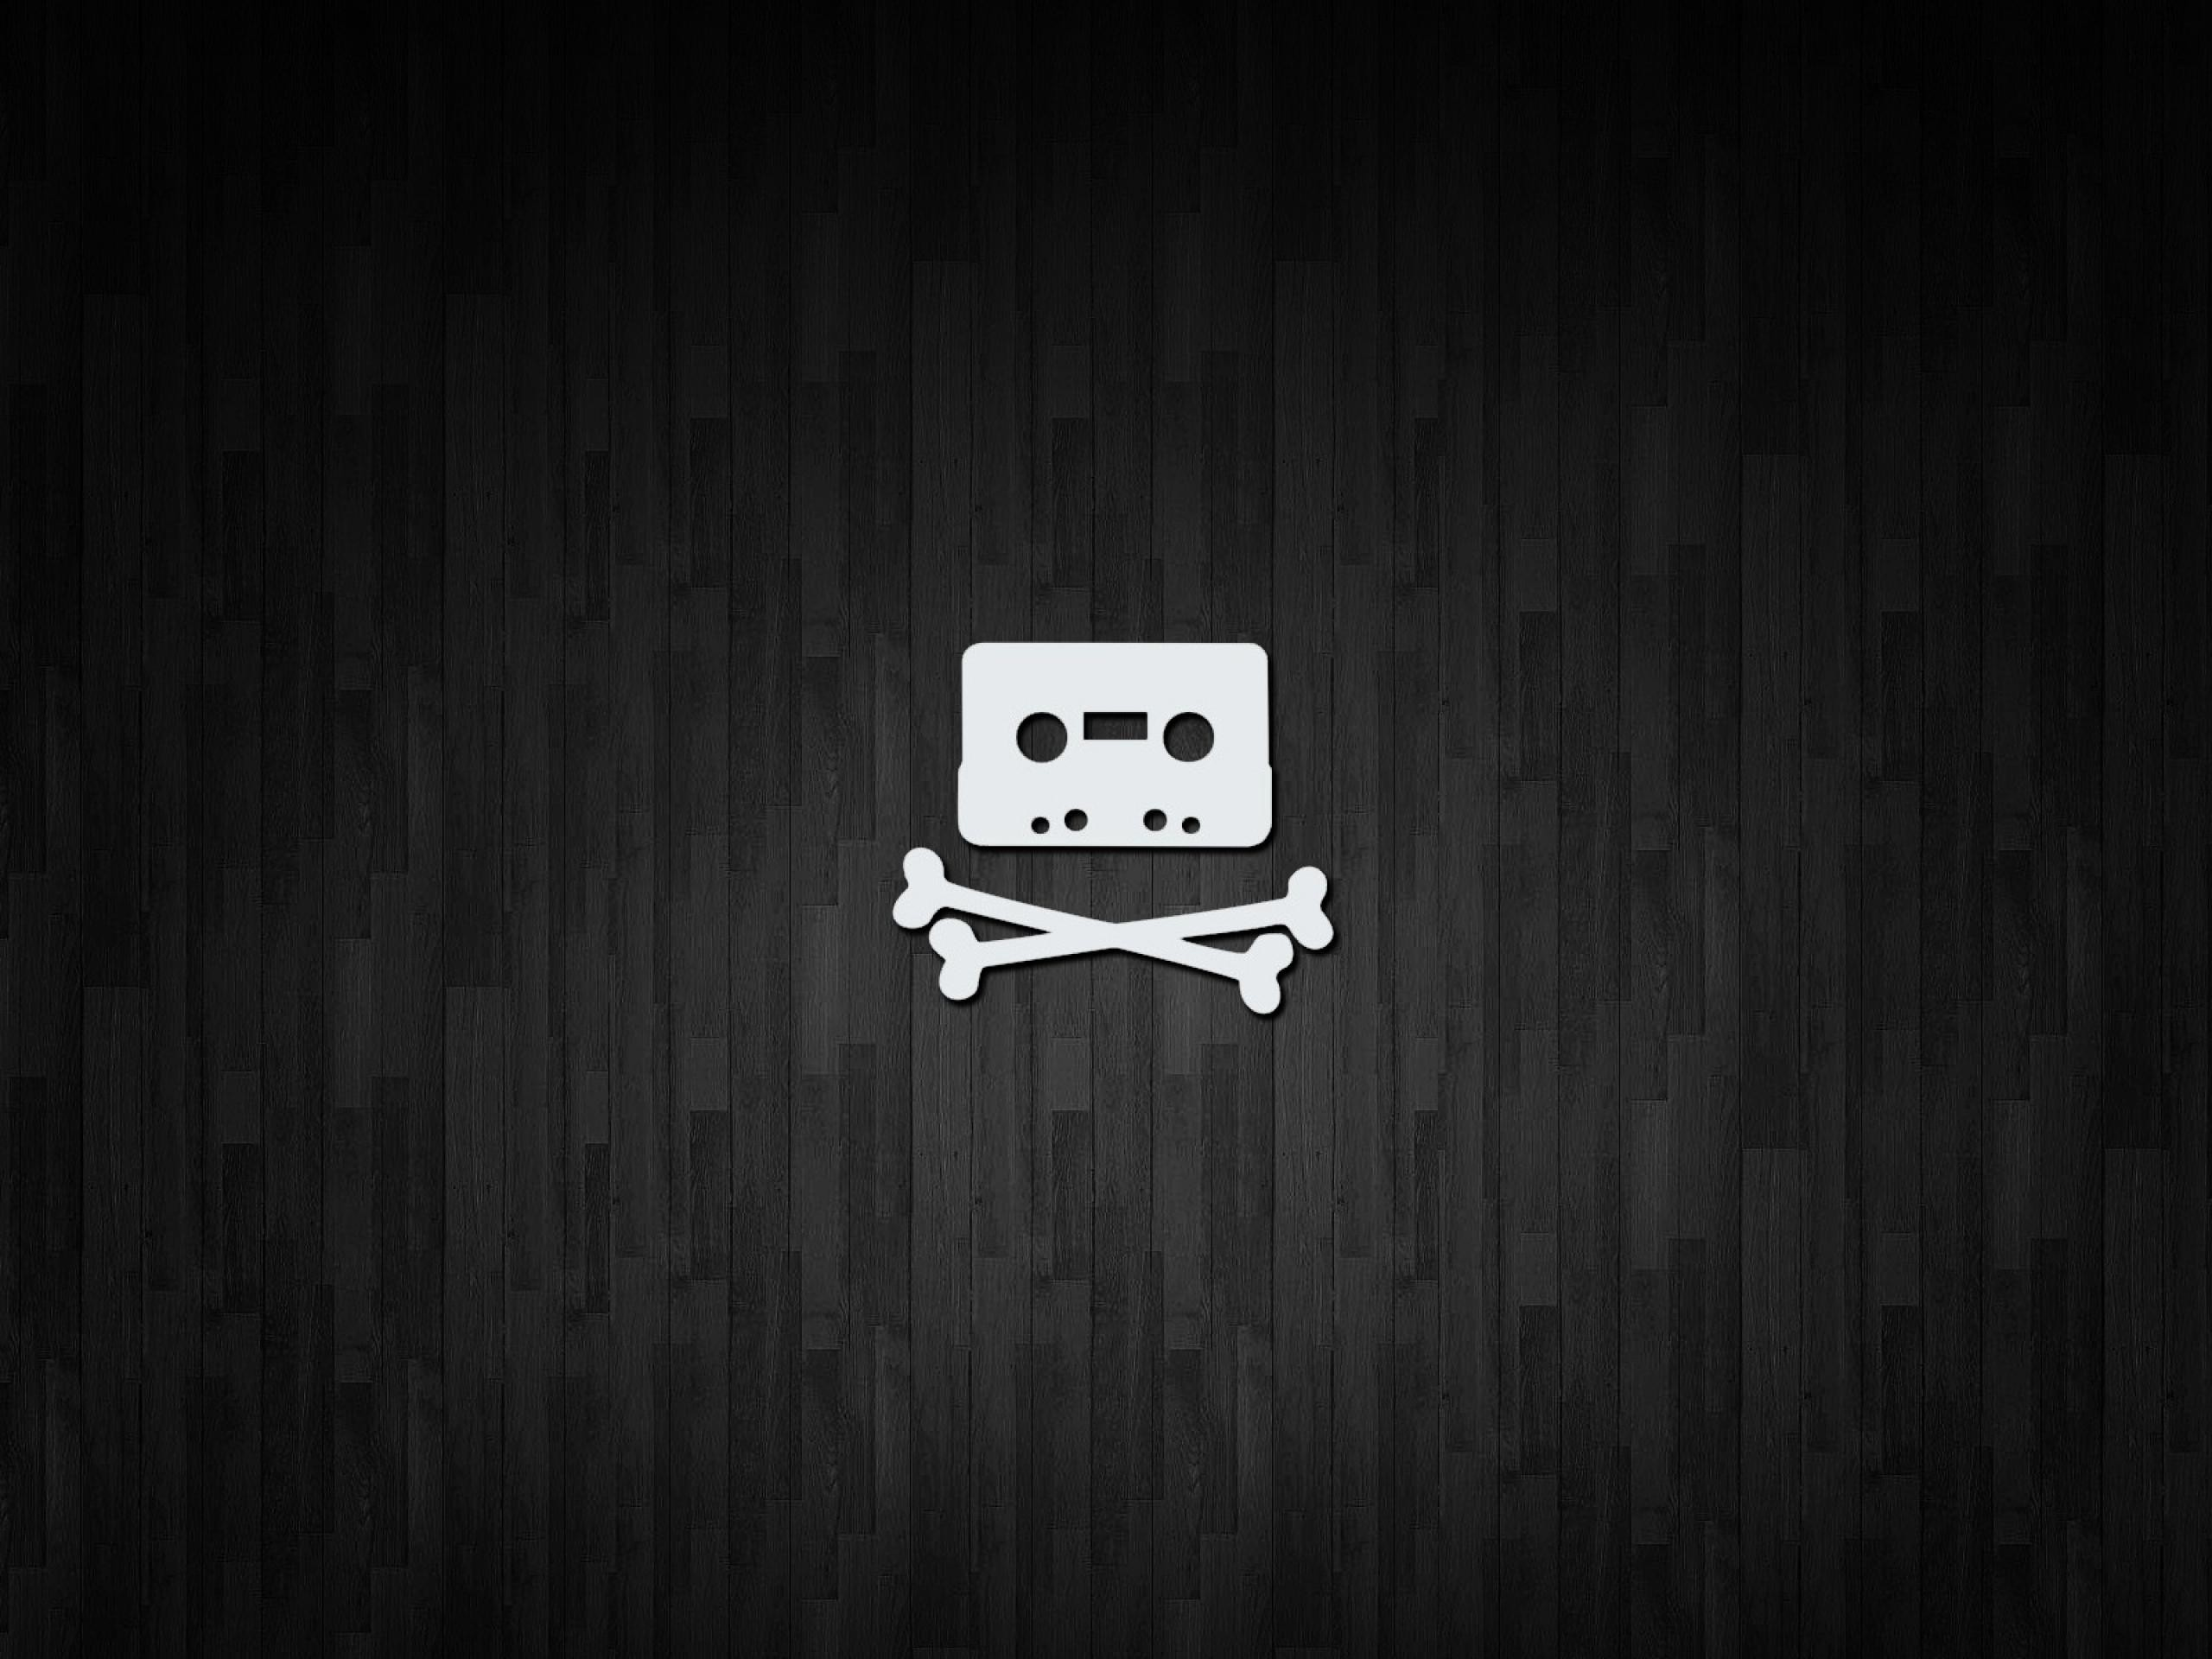 Most Inspiring Wallpaper Music Logo - home-taping-is-killing-music-black-bones-piracy-2560x1920-wallpaper  Perfect Image Reference_188423.jpg